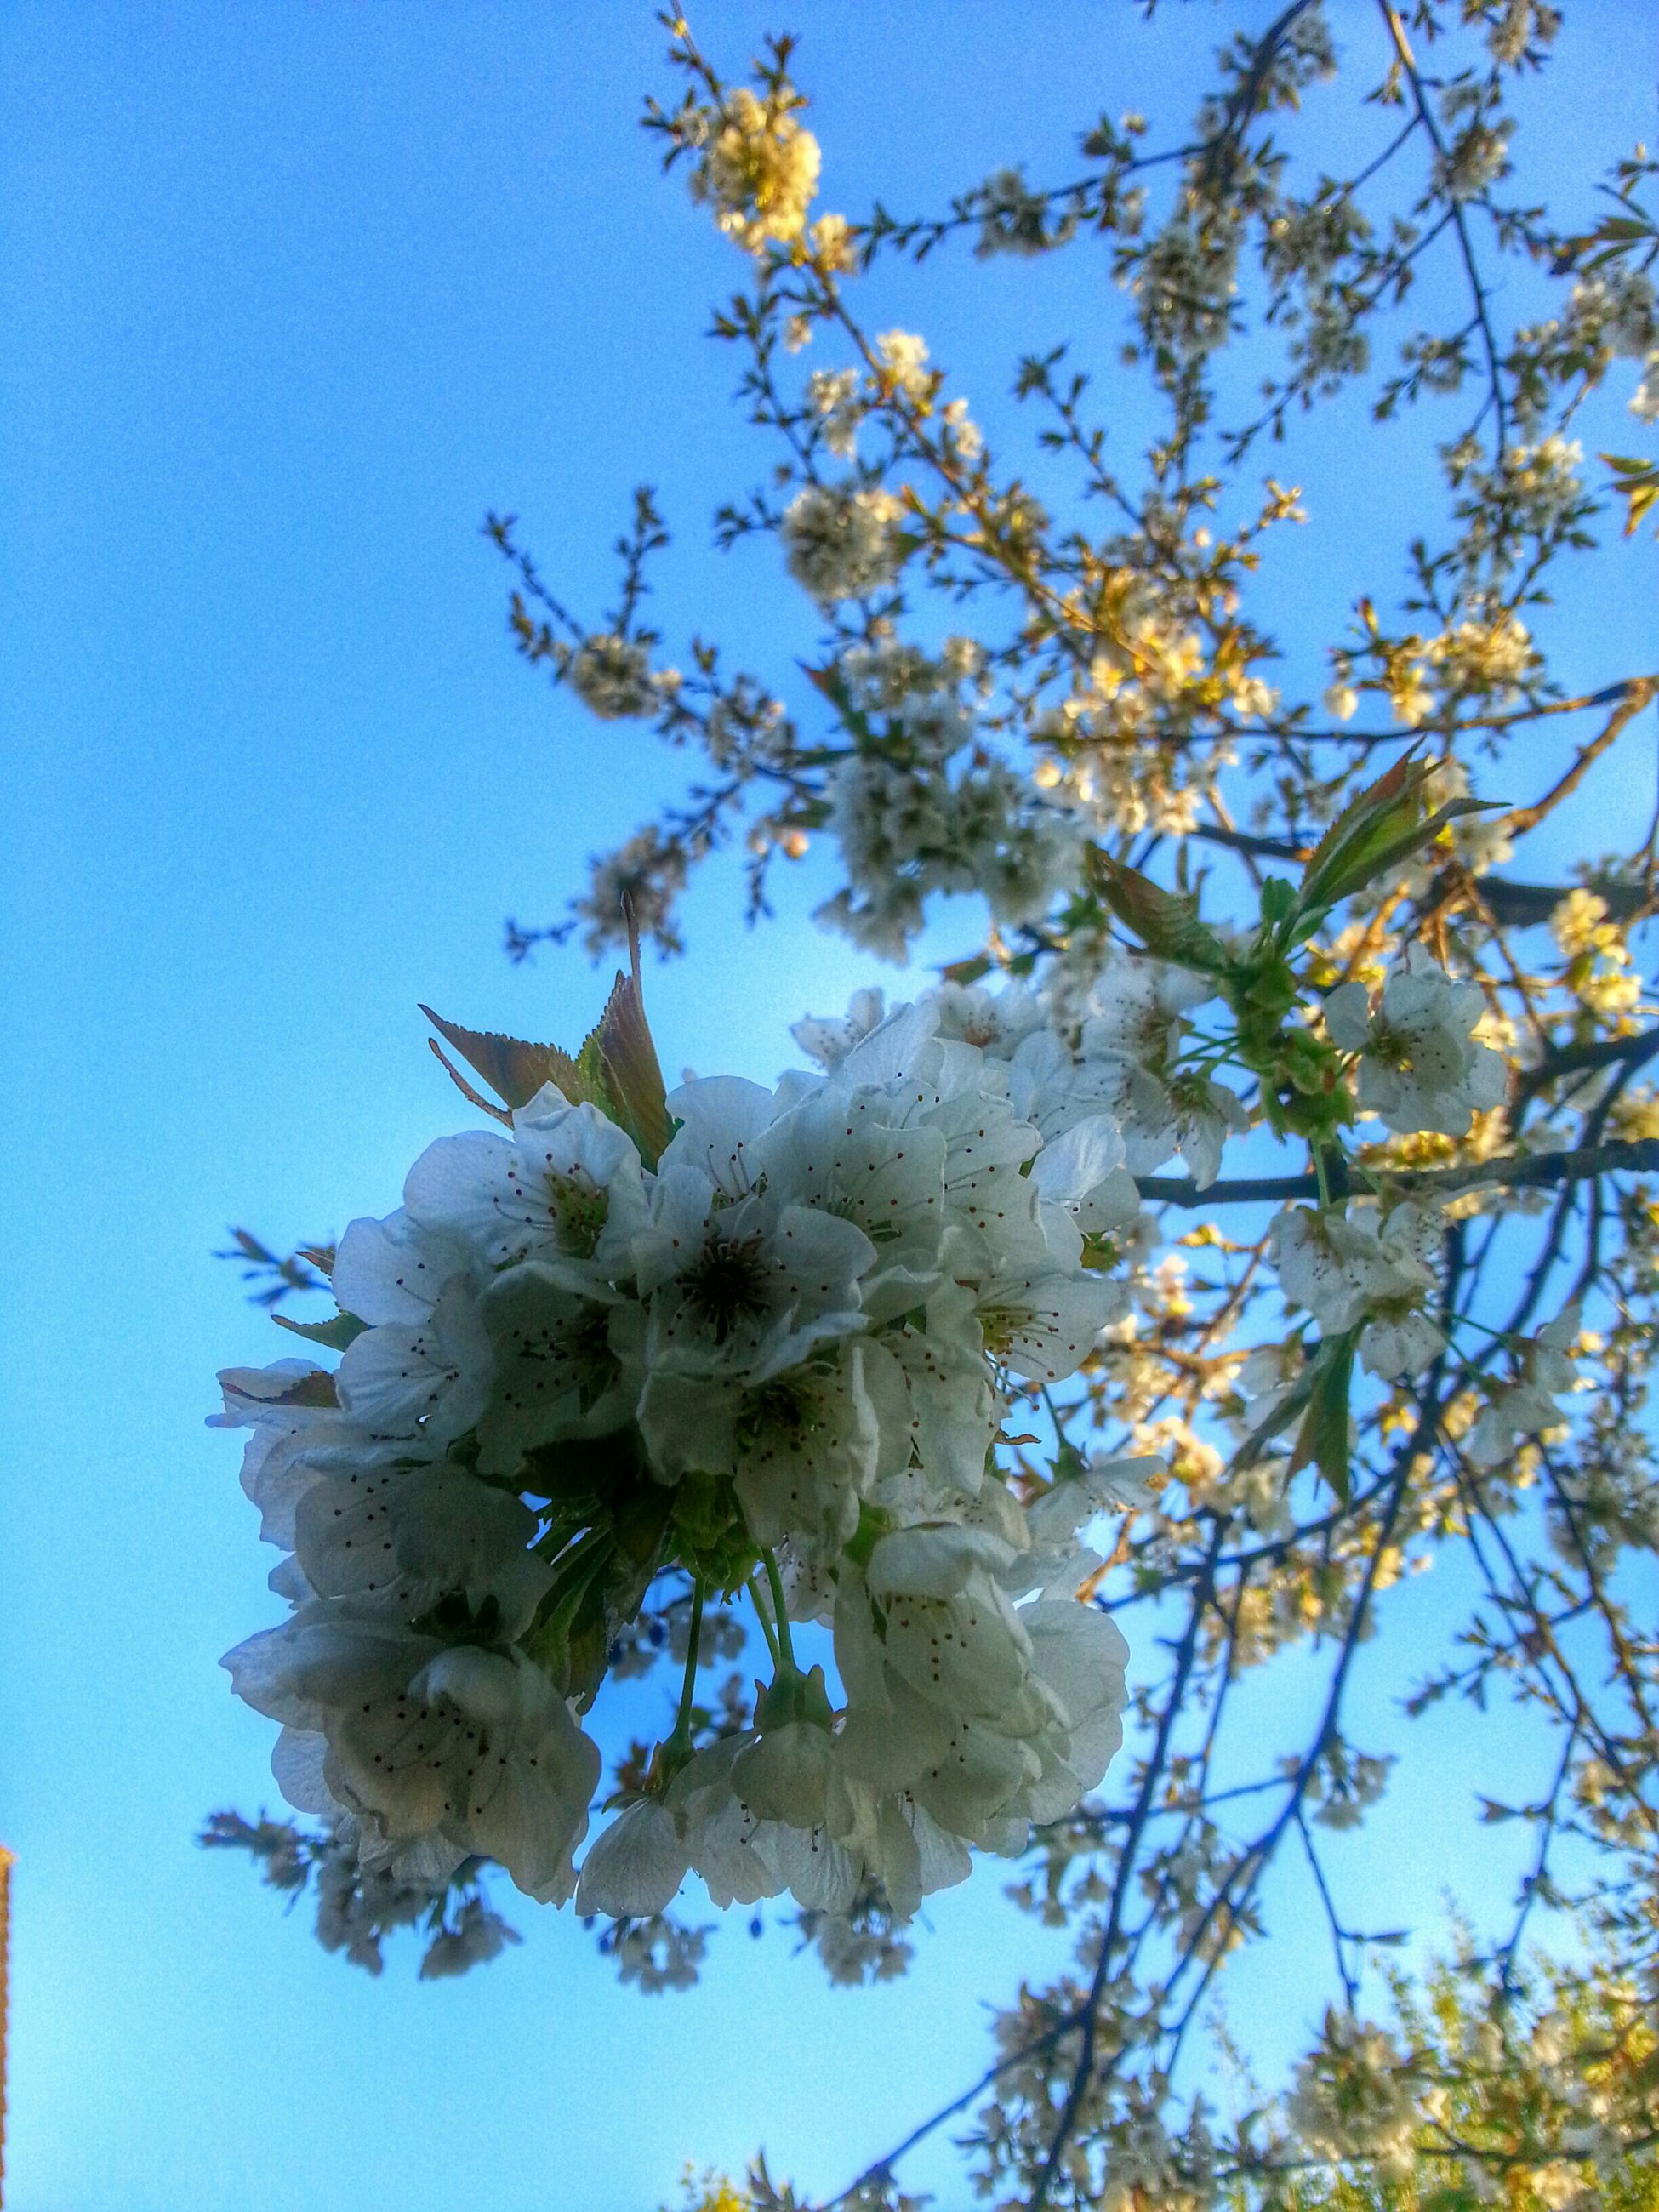 flower, low angle view, freshness, growth, branch, tree, clear sky, blue, fragility, beauty in nature, nature, blossom, blooming, petal, in bloom, white color, sky, springtime, cherry blossom, flower head